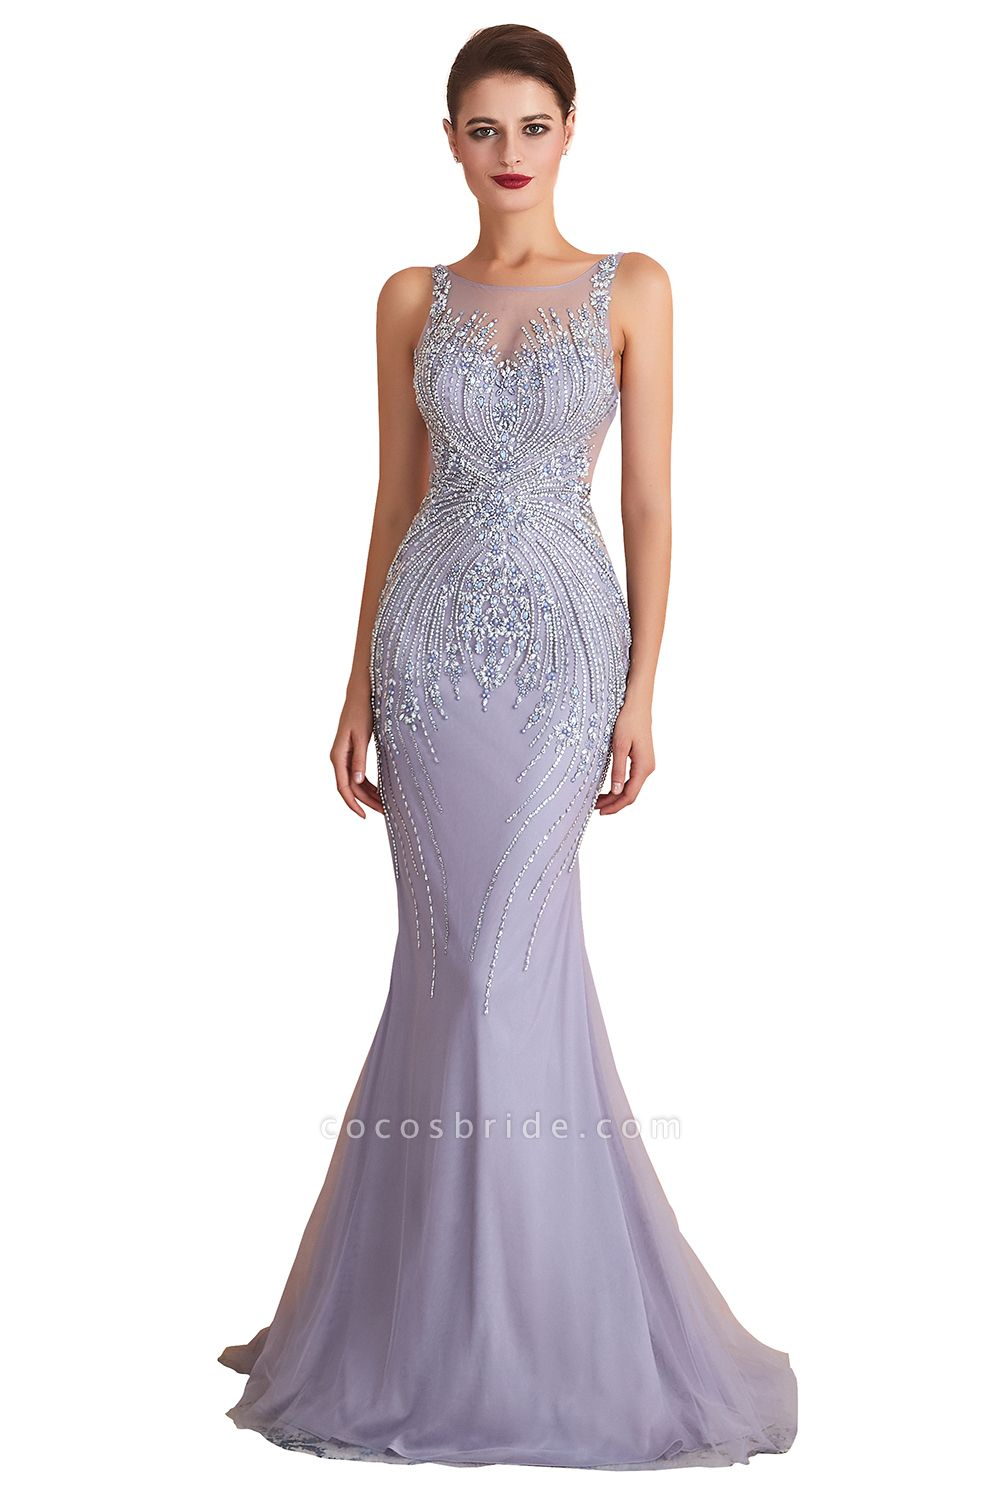 Graceful Jewel Tulle Mermaid Prom Dress